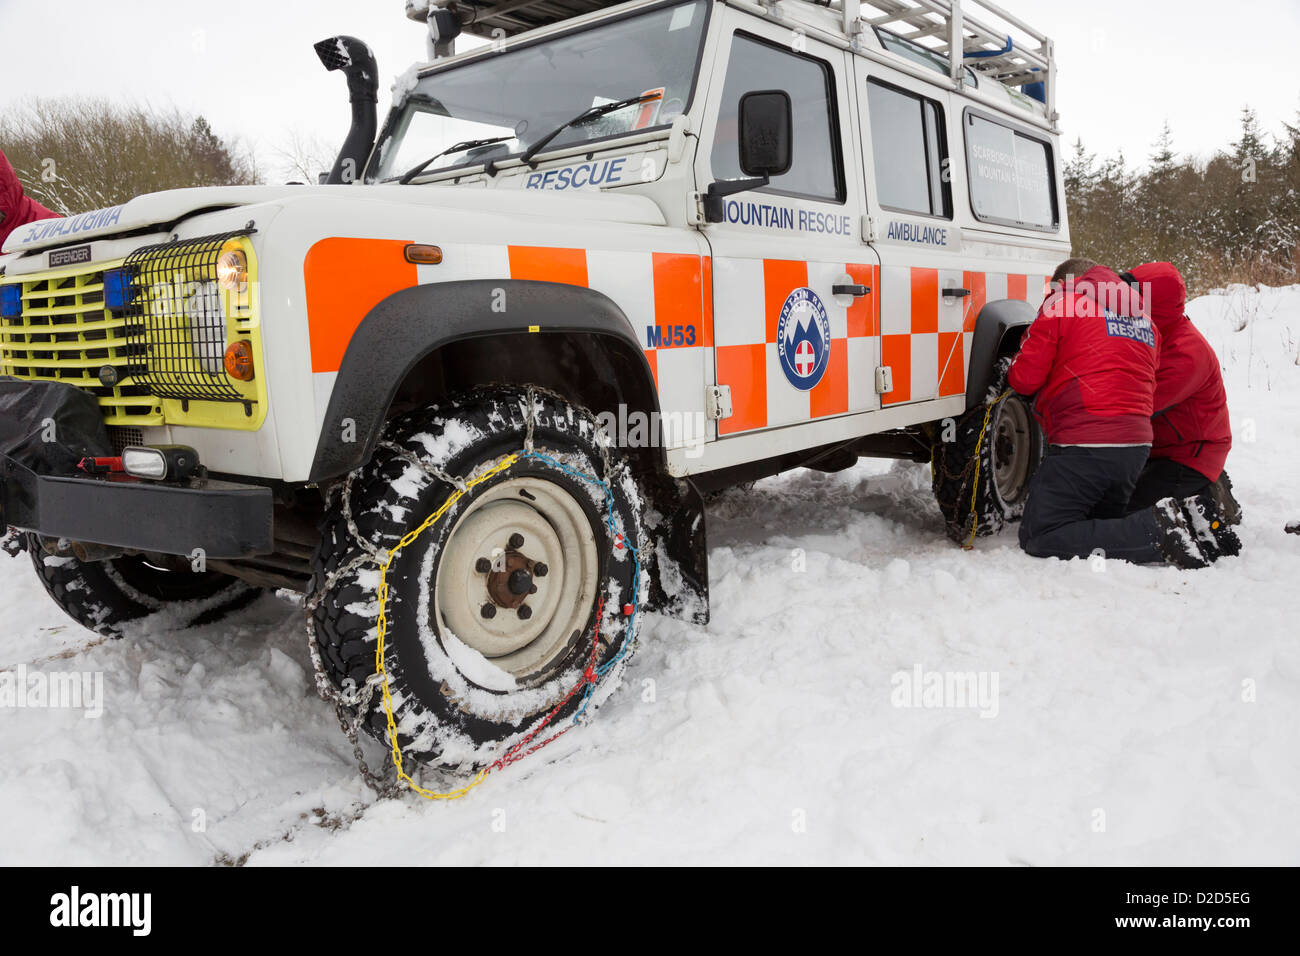 Scarborough & Ryedale Mountain Rescue team fitting snow chains, during a training exercise in Dalby Forest. - Stock Image